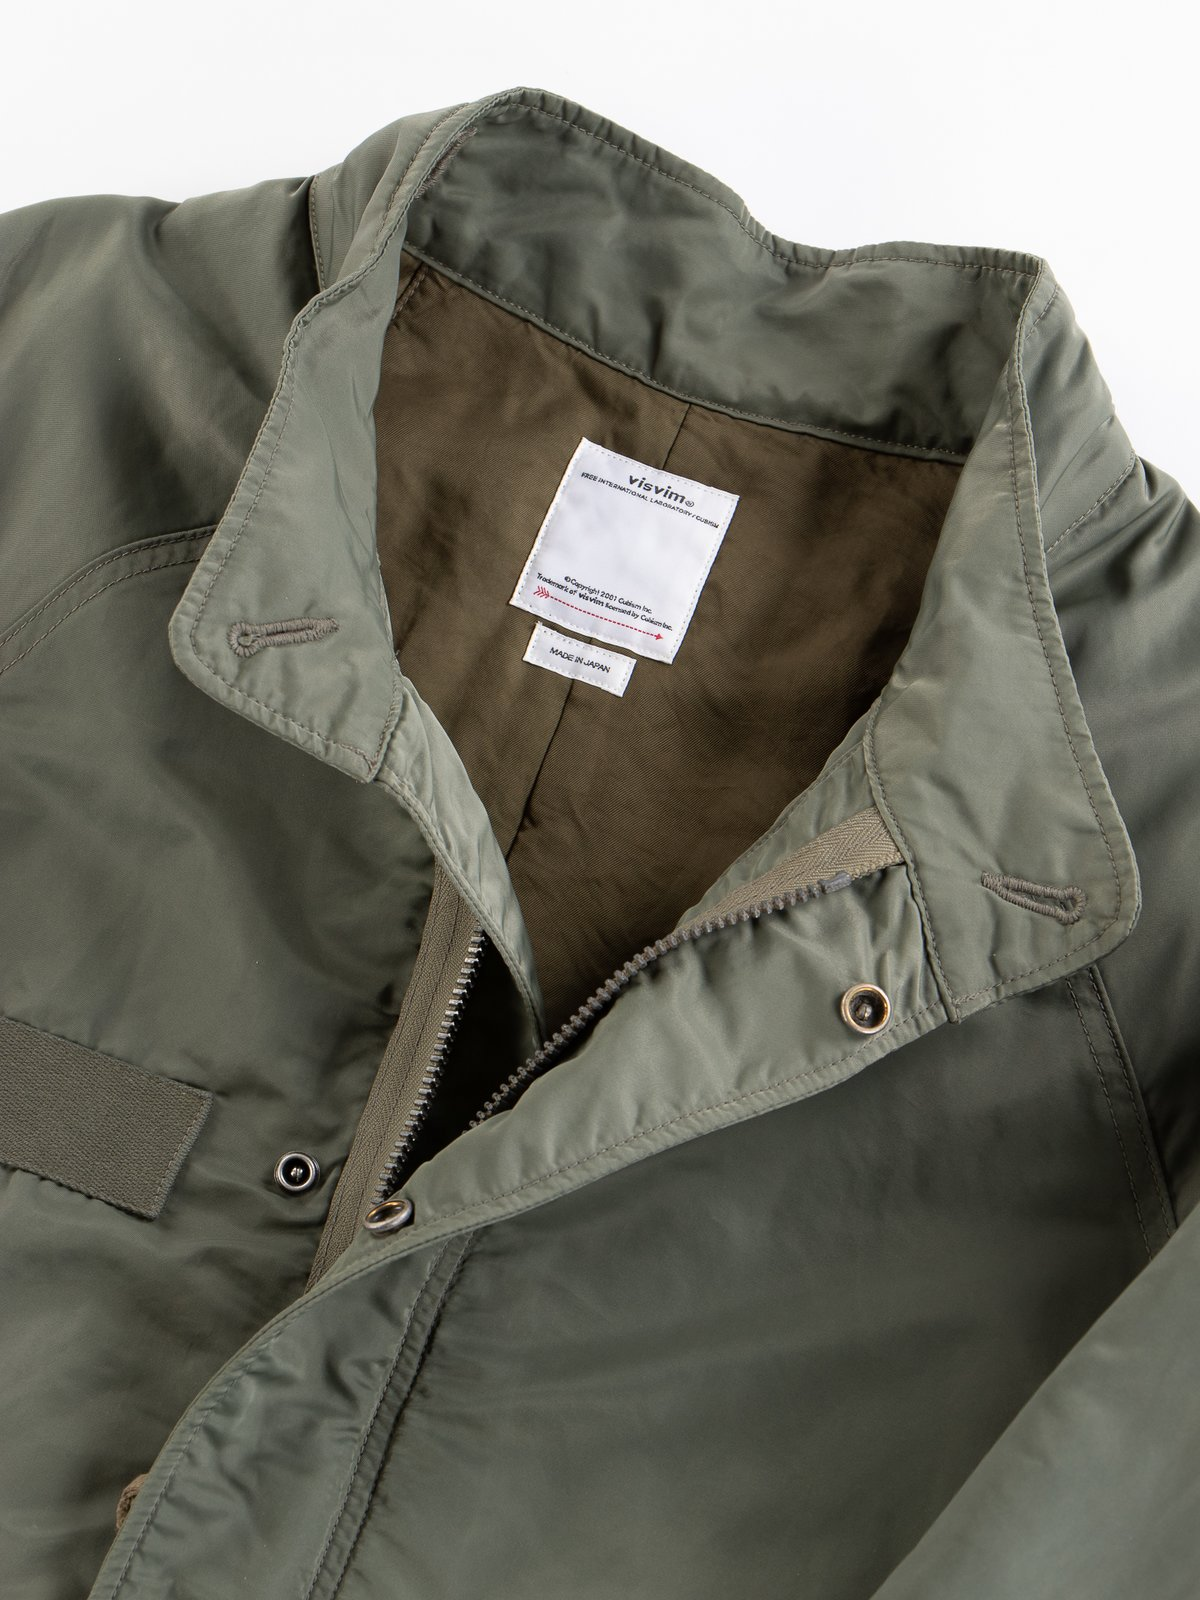 Olive Six–Five Fishtail Parka - Image 8